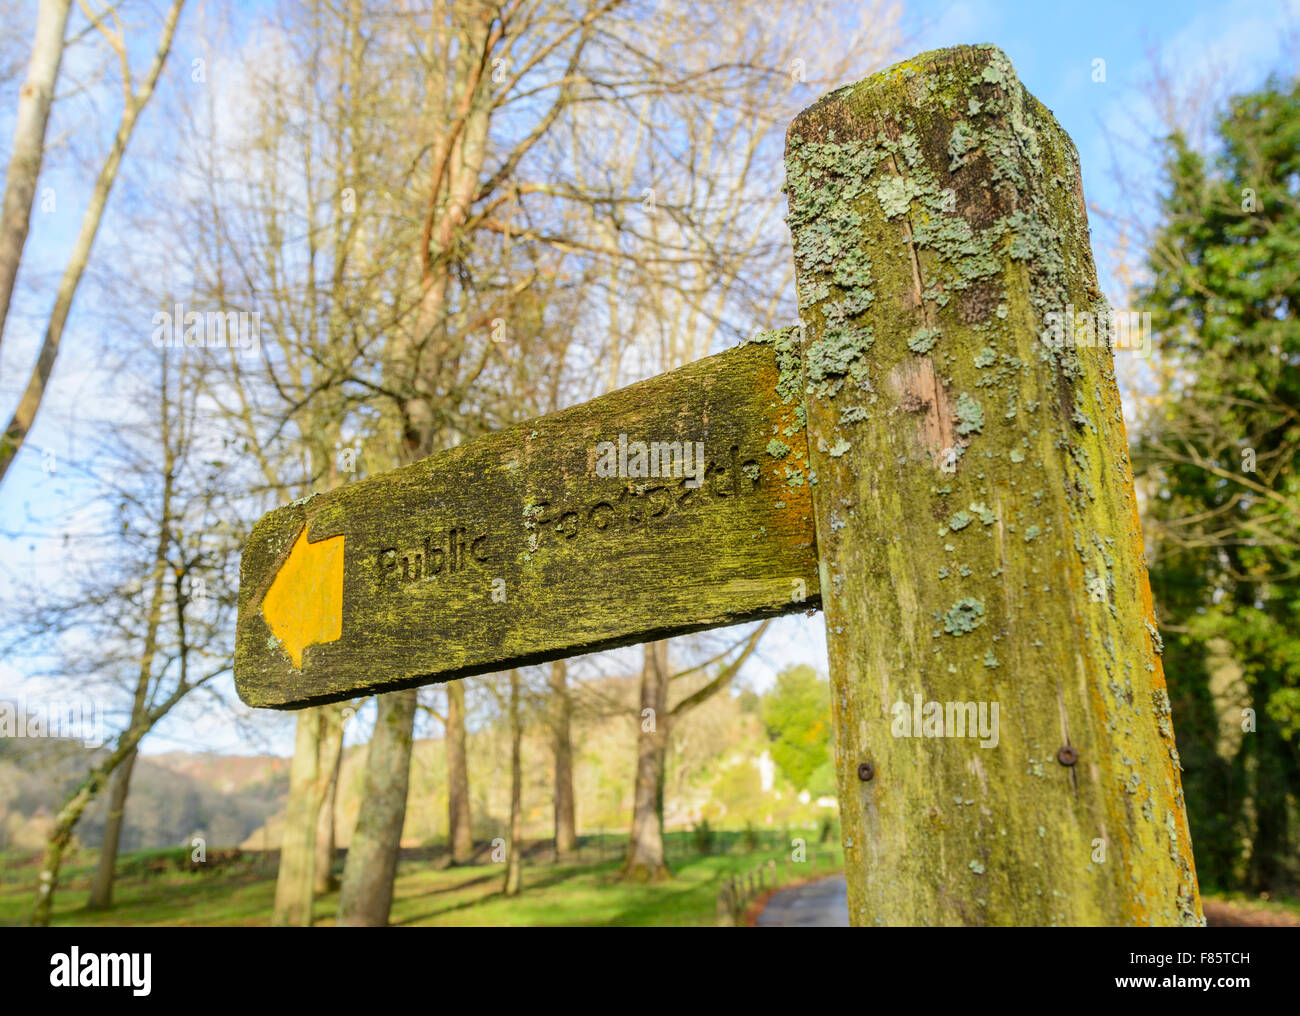 Public footpath finger post in winter in the UK. - Stock Image